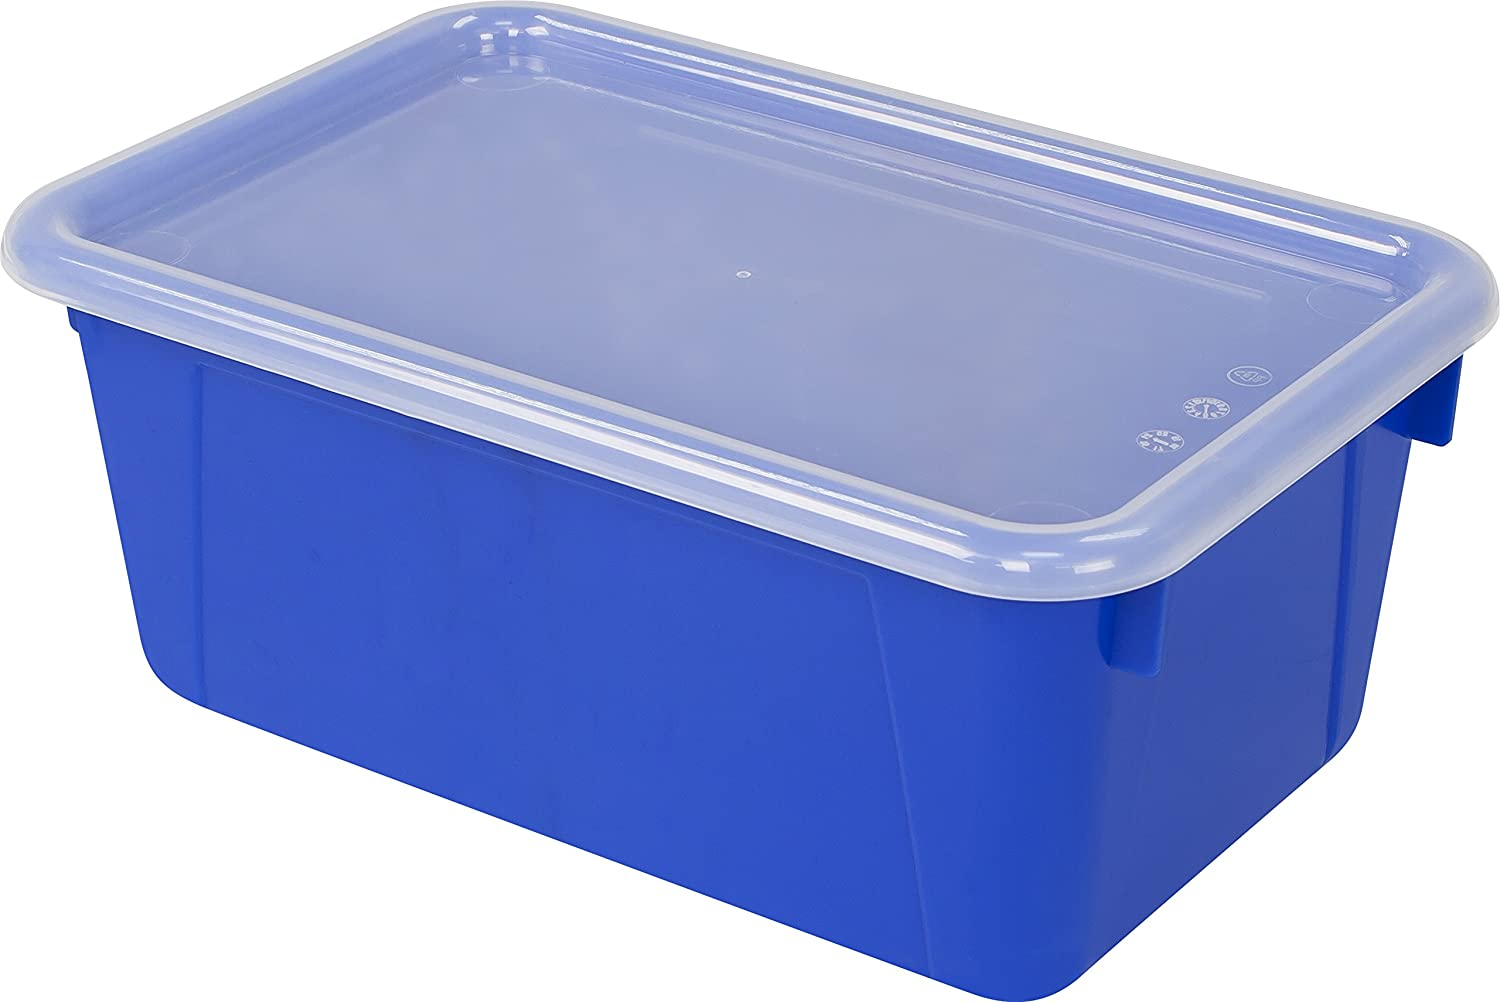 "Storex Small Cubby Bin with Cover, Plastic Storage Container Fits Classroom Cubbies, 12.2"" x 7.8"" x 1"", Blue, Pack of 5 (62408U05C)"